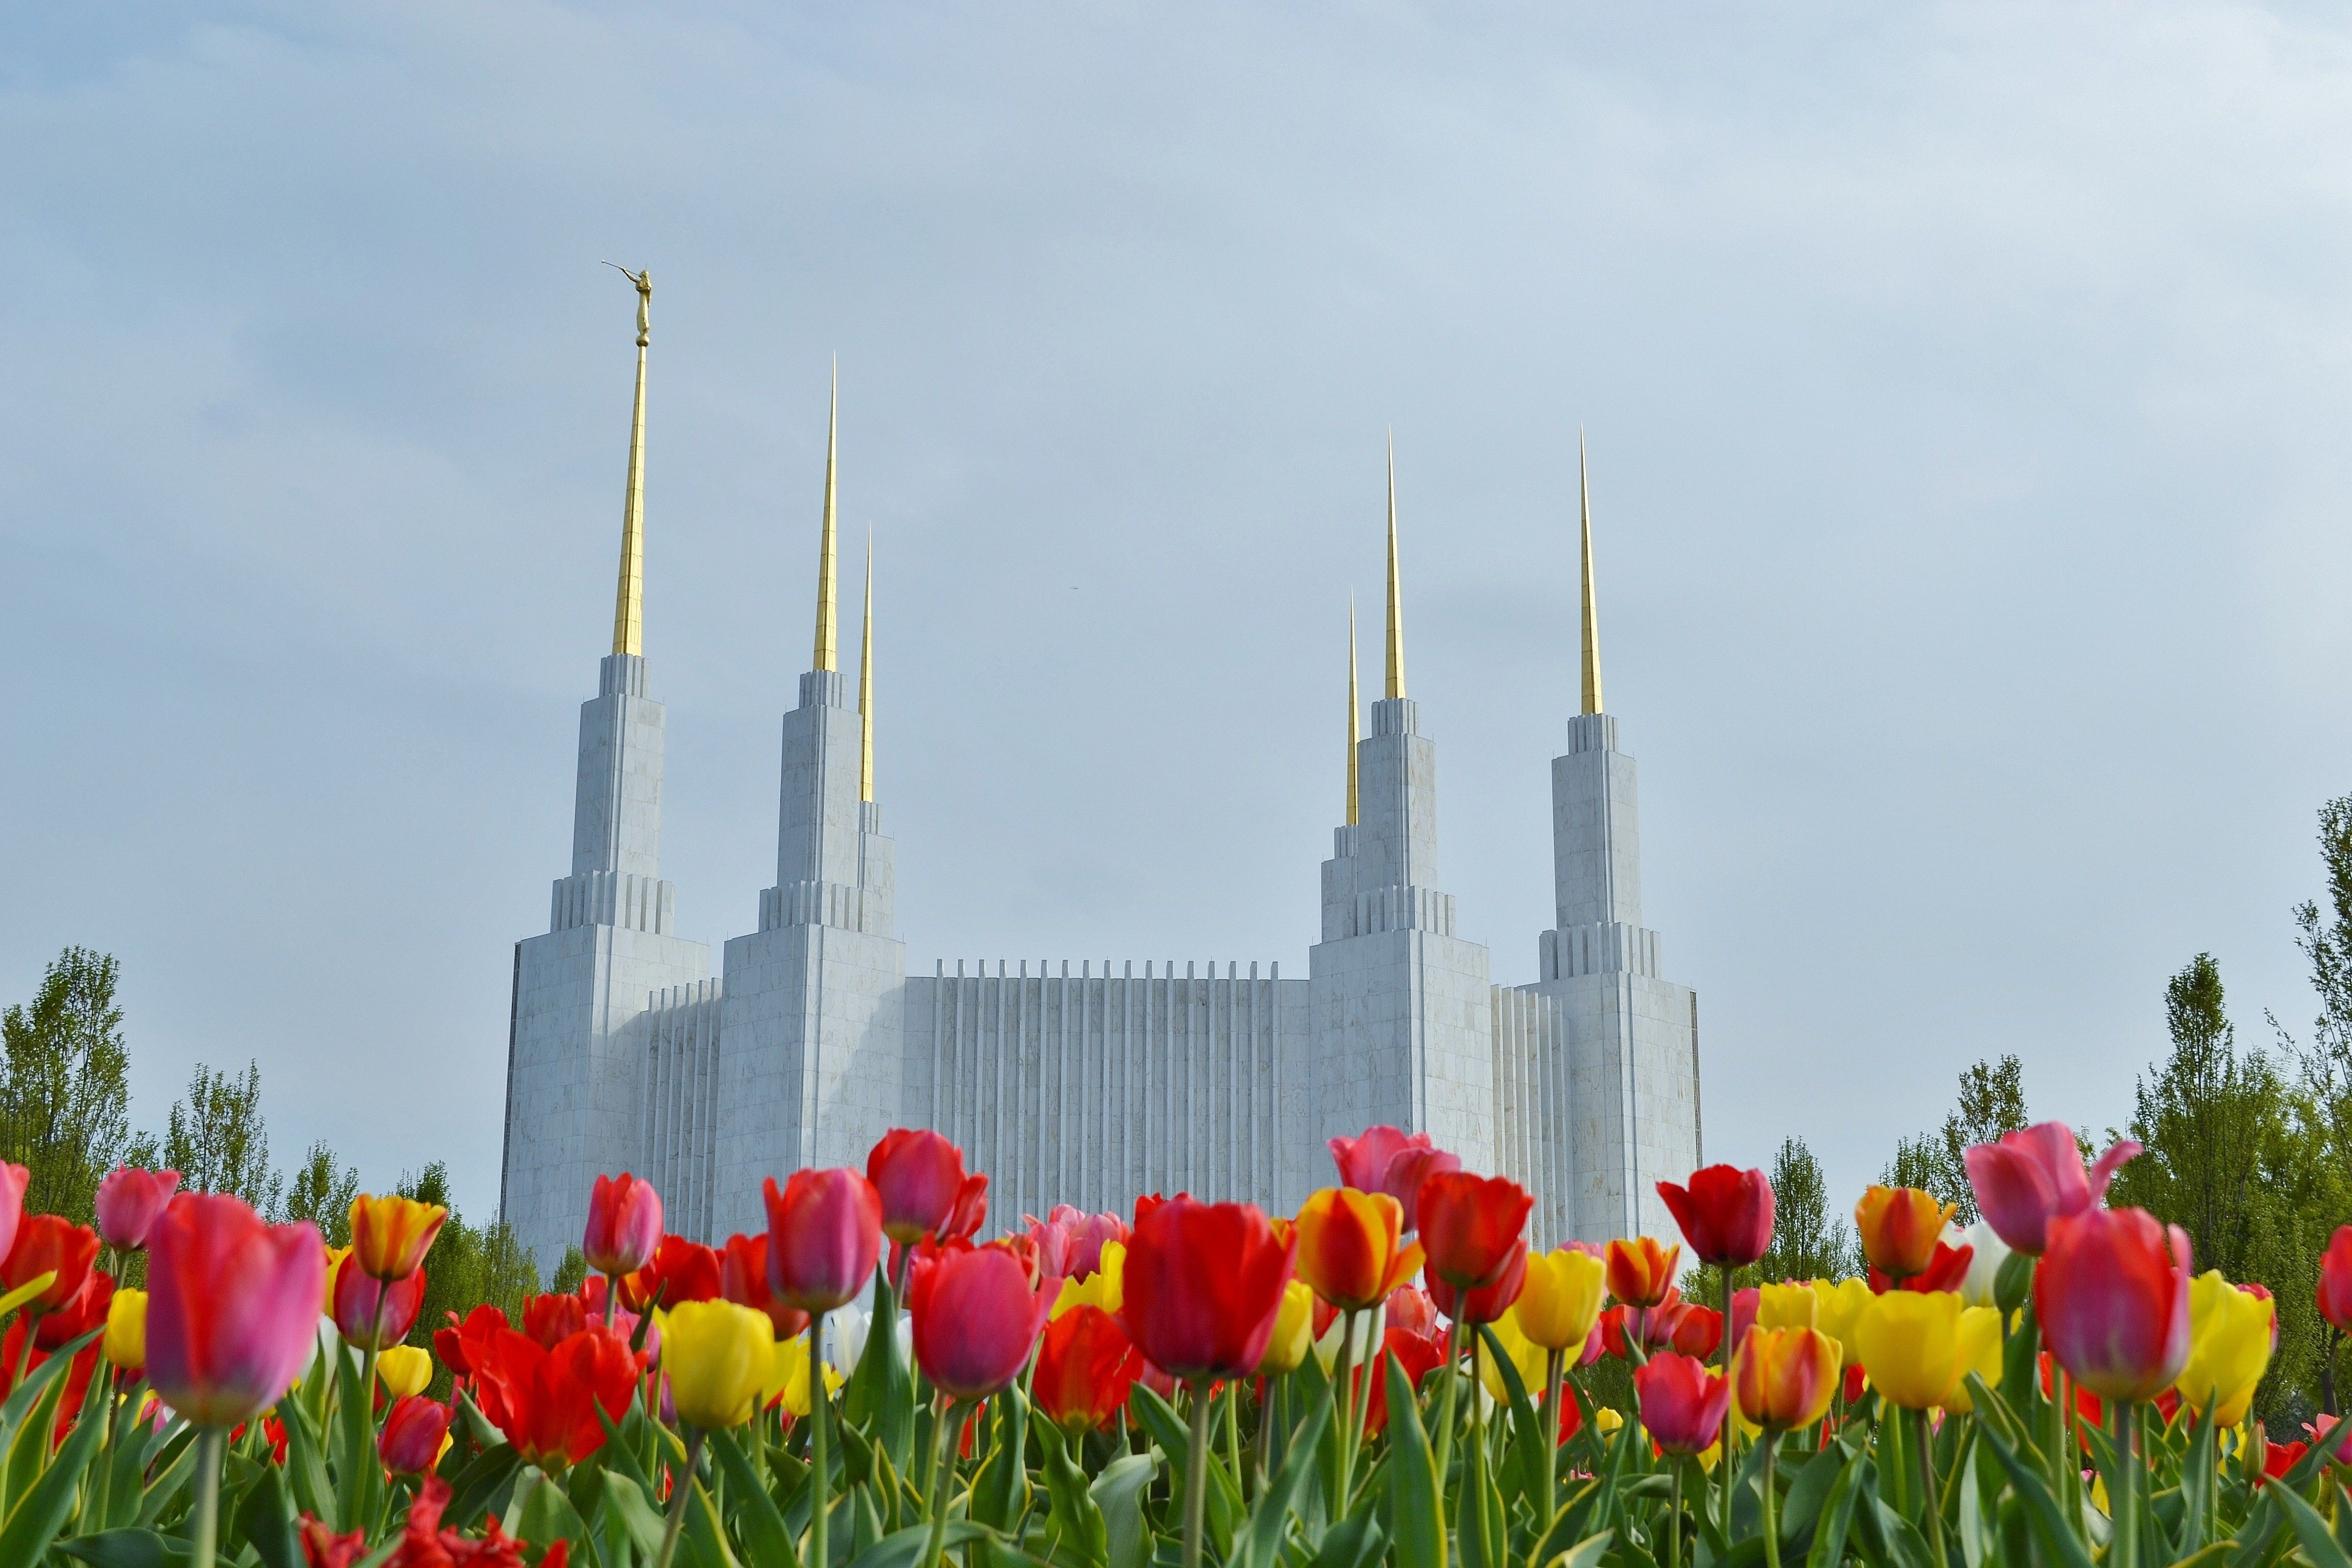 The Washington D.C. Temple during spring, with flowers.